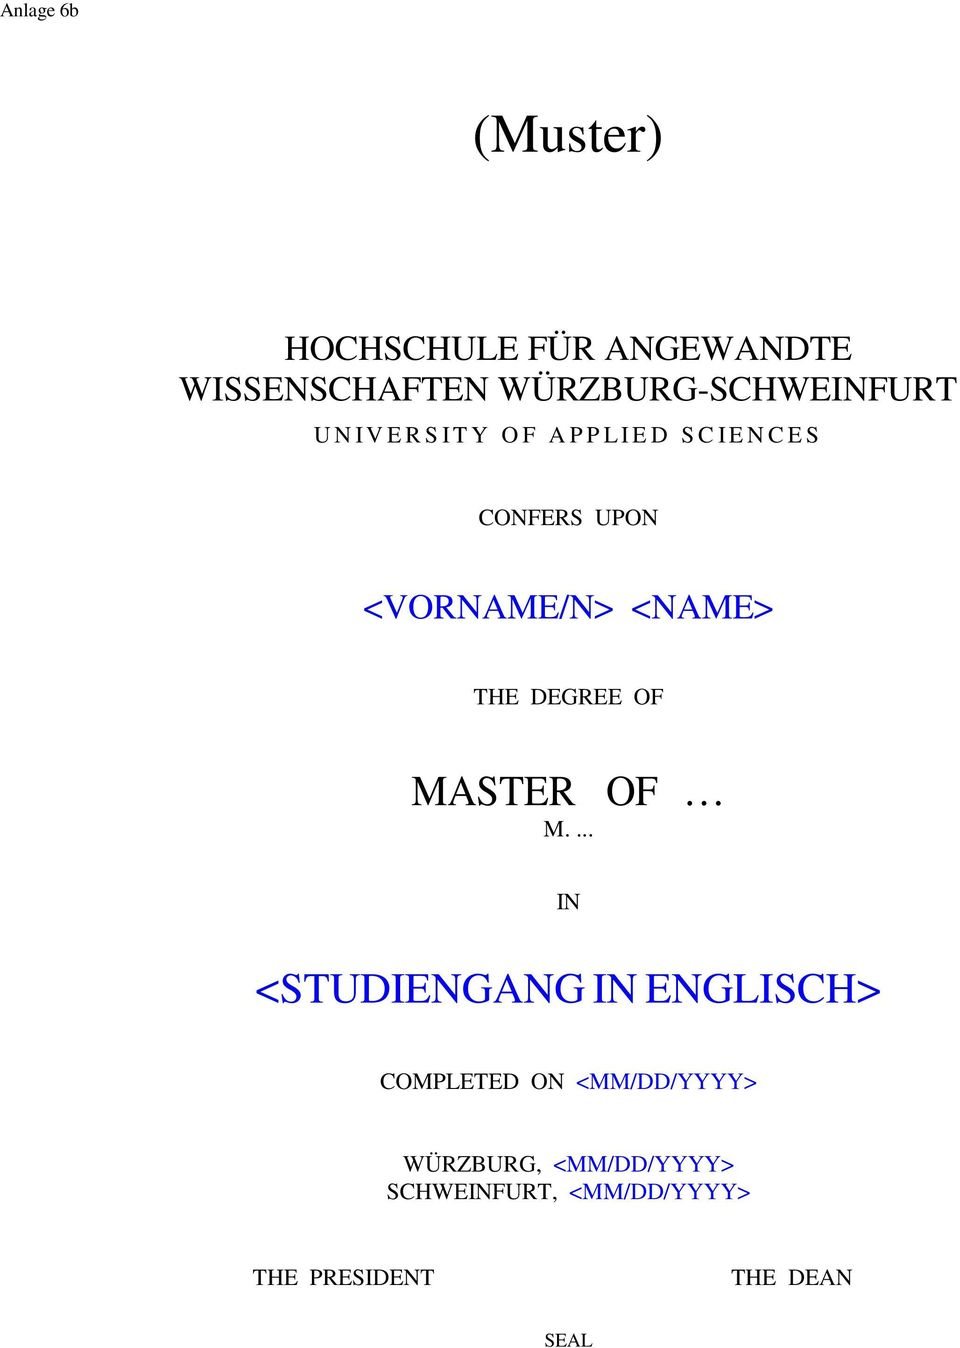 THE DEGREE OF MASTER OF M.